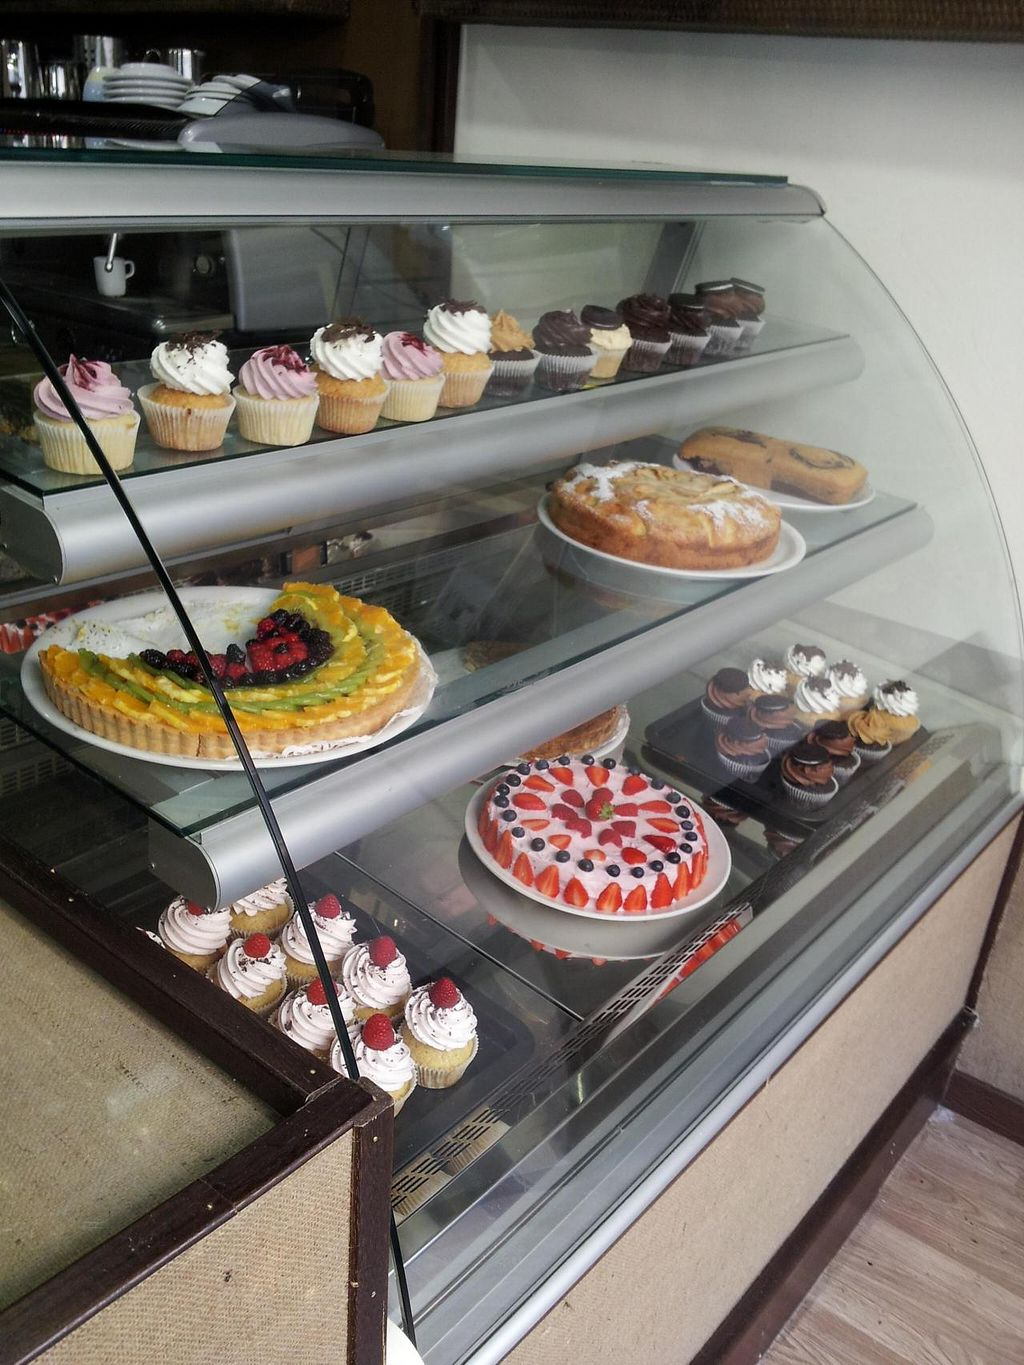 """Photo of Alhambra Cafe  by <a href=""""/members/profile/L_Almo_Clelarco"""">L_Almo_Clelarco</a> <br/>Cakes! <br/> June 13, 2014  - <a href='/contact/abuse/image/47914/71950'>Report</a>"""